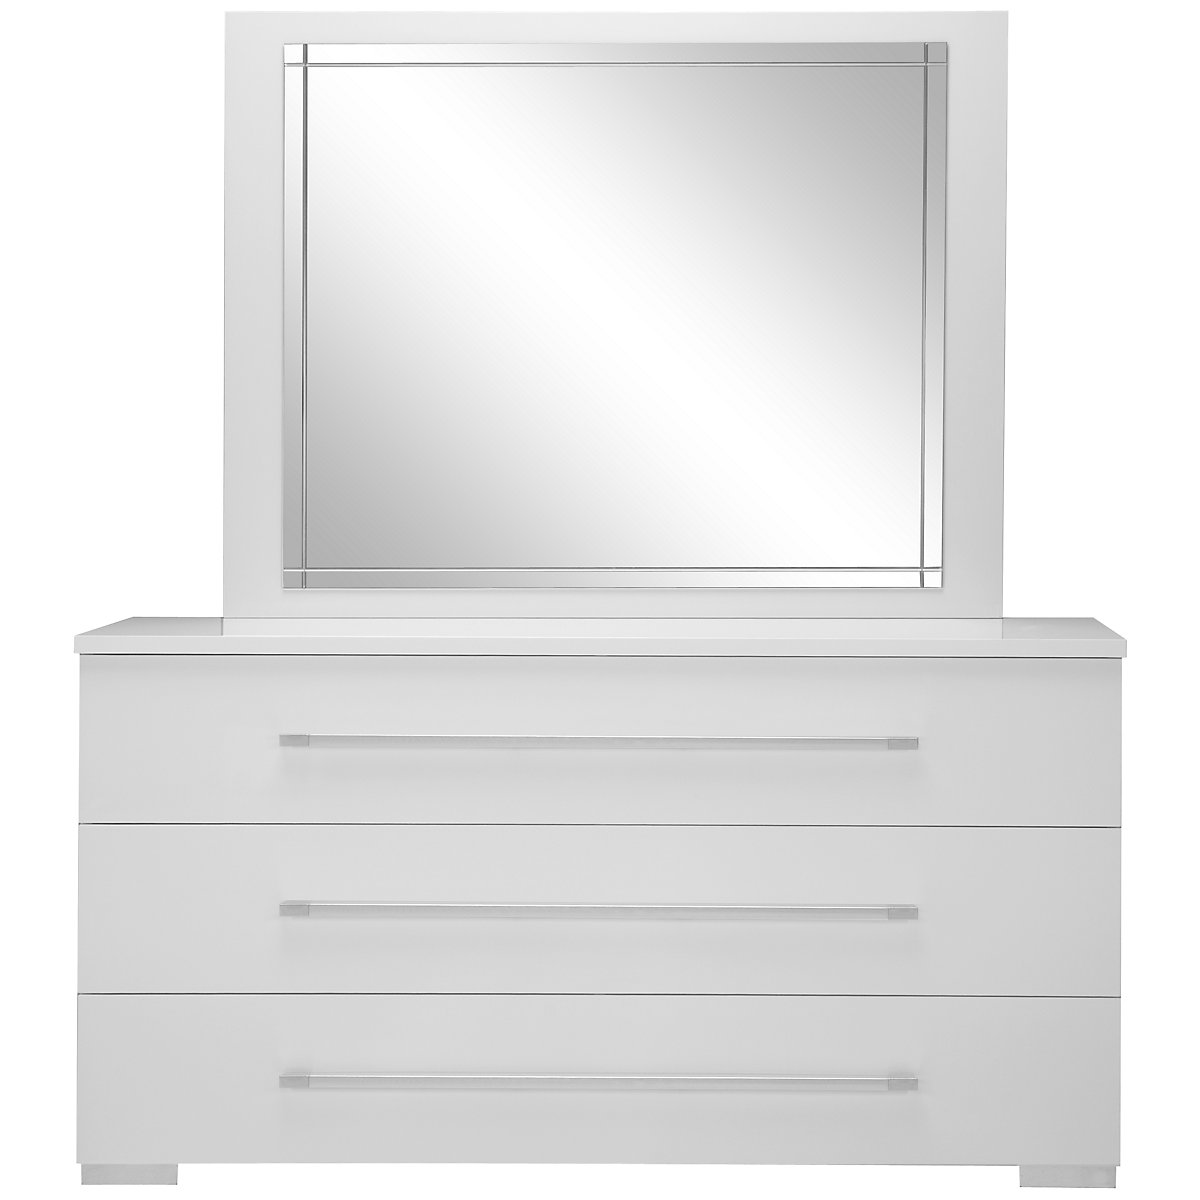 Dimora white dresser mirror bedroom furniture set for White dresser set bedroom furniture